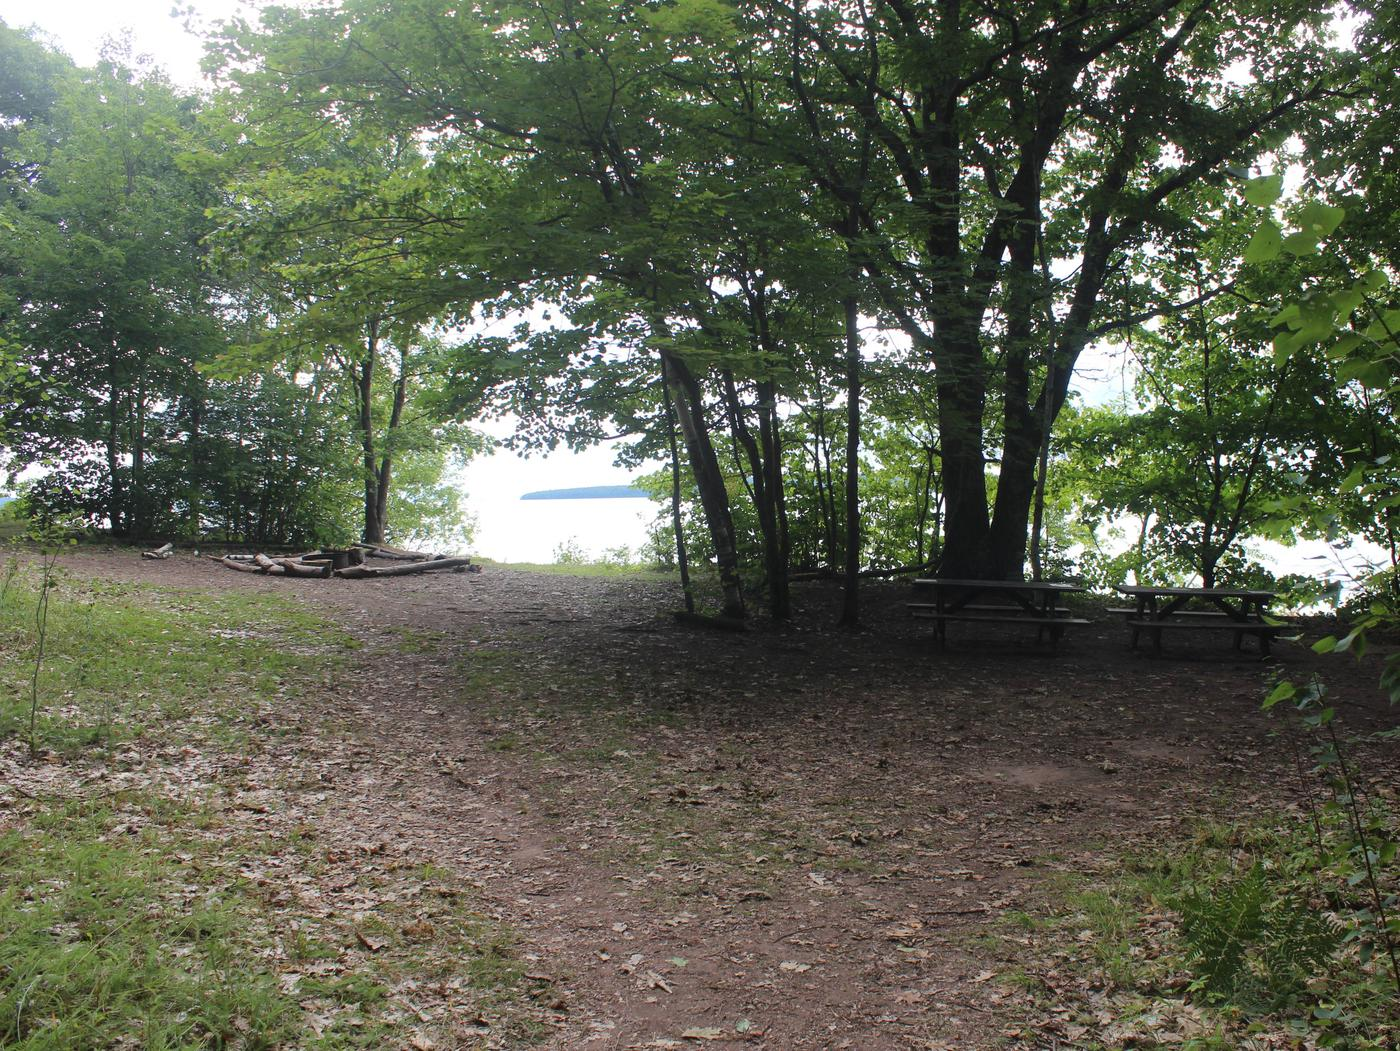 Oak site A with fire ring, two picnic tables, and lake viewOak site A